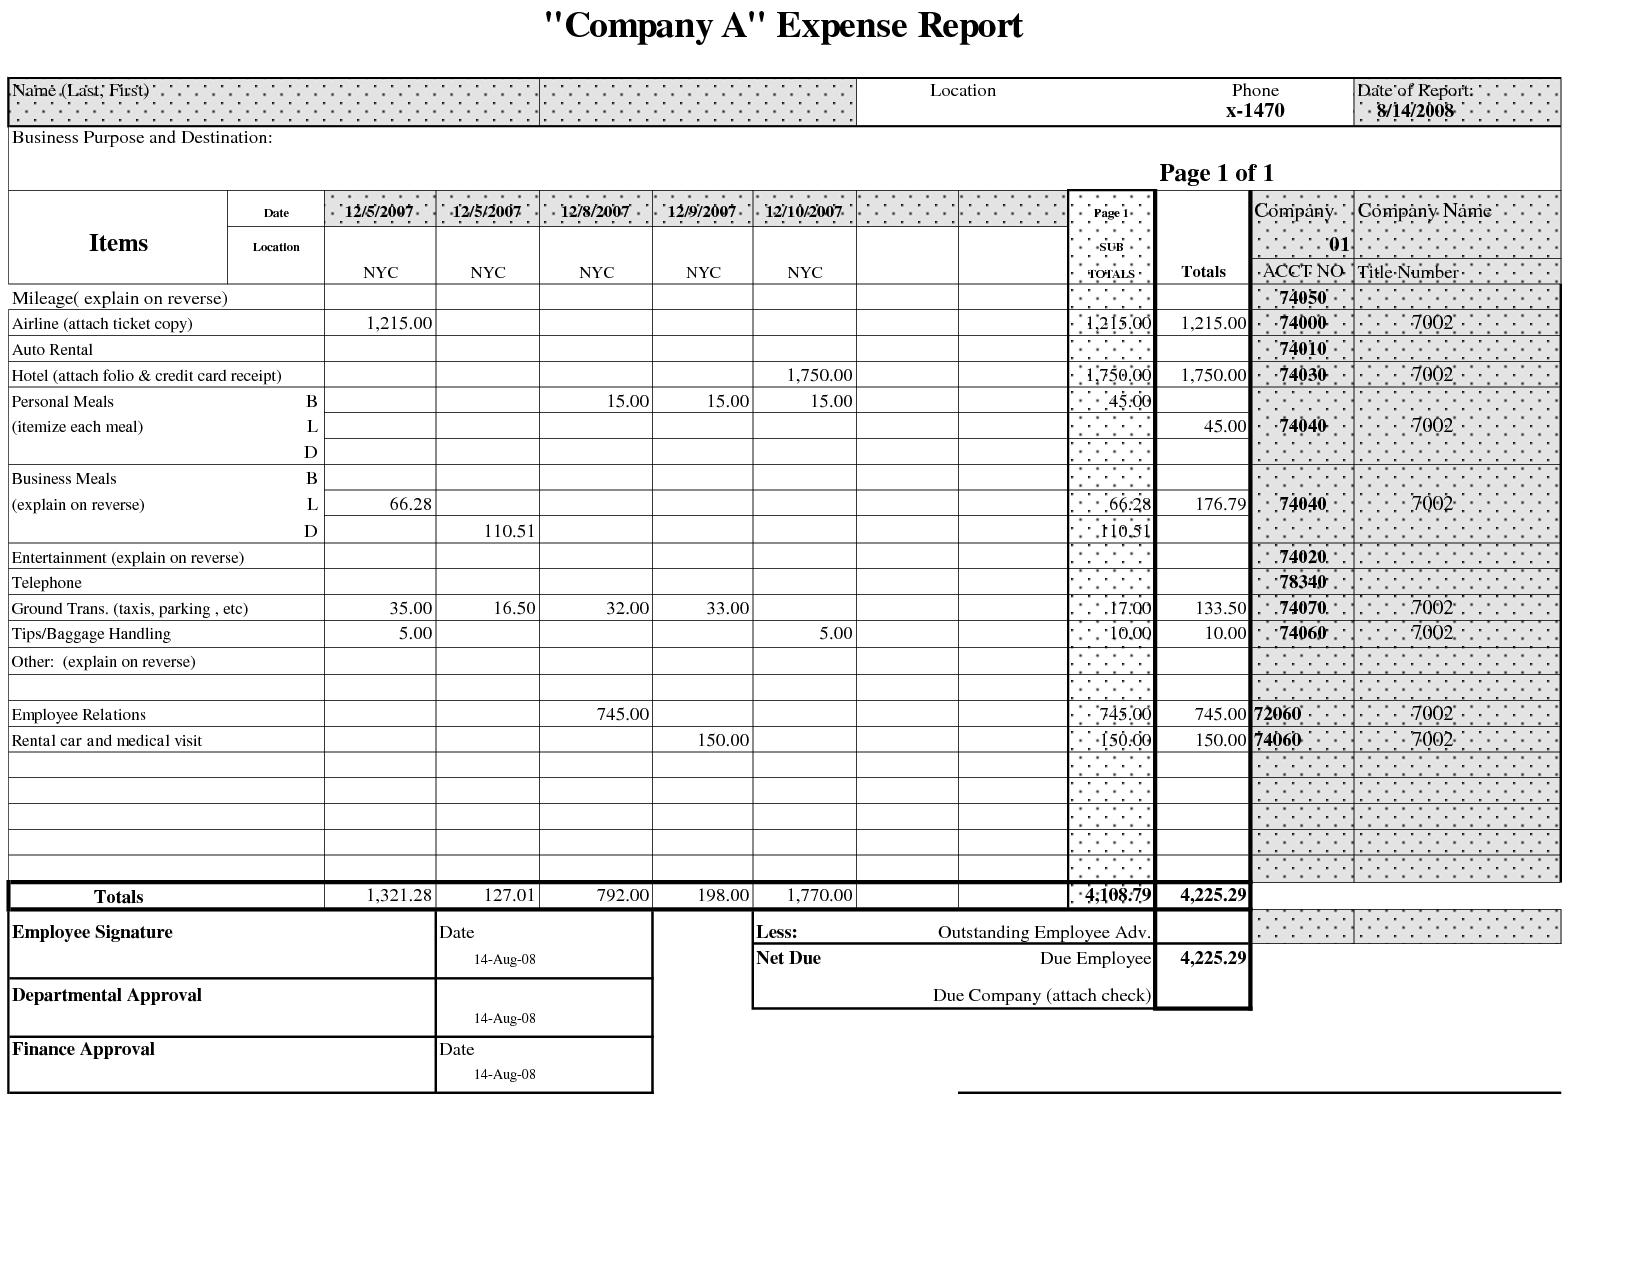 Blank Expense Reports Templates